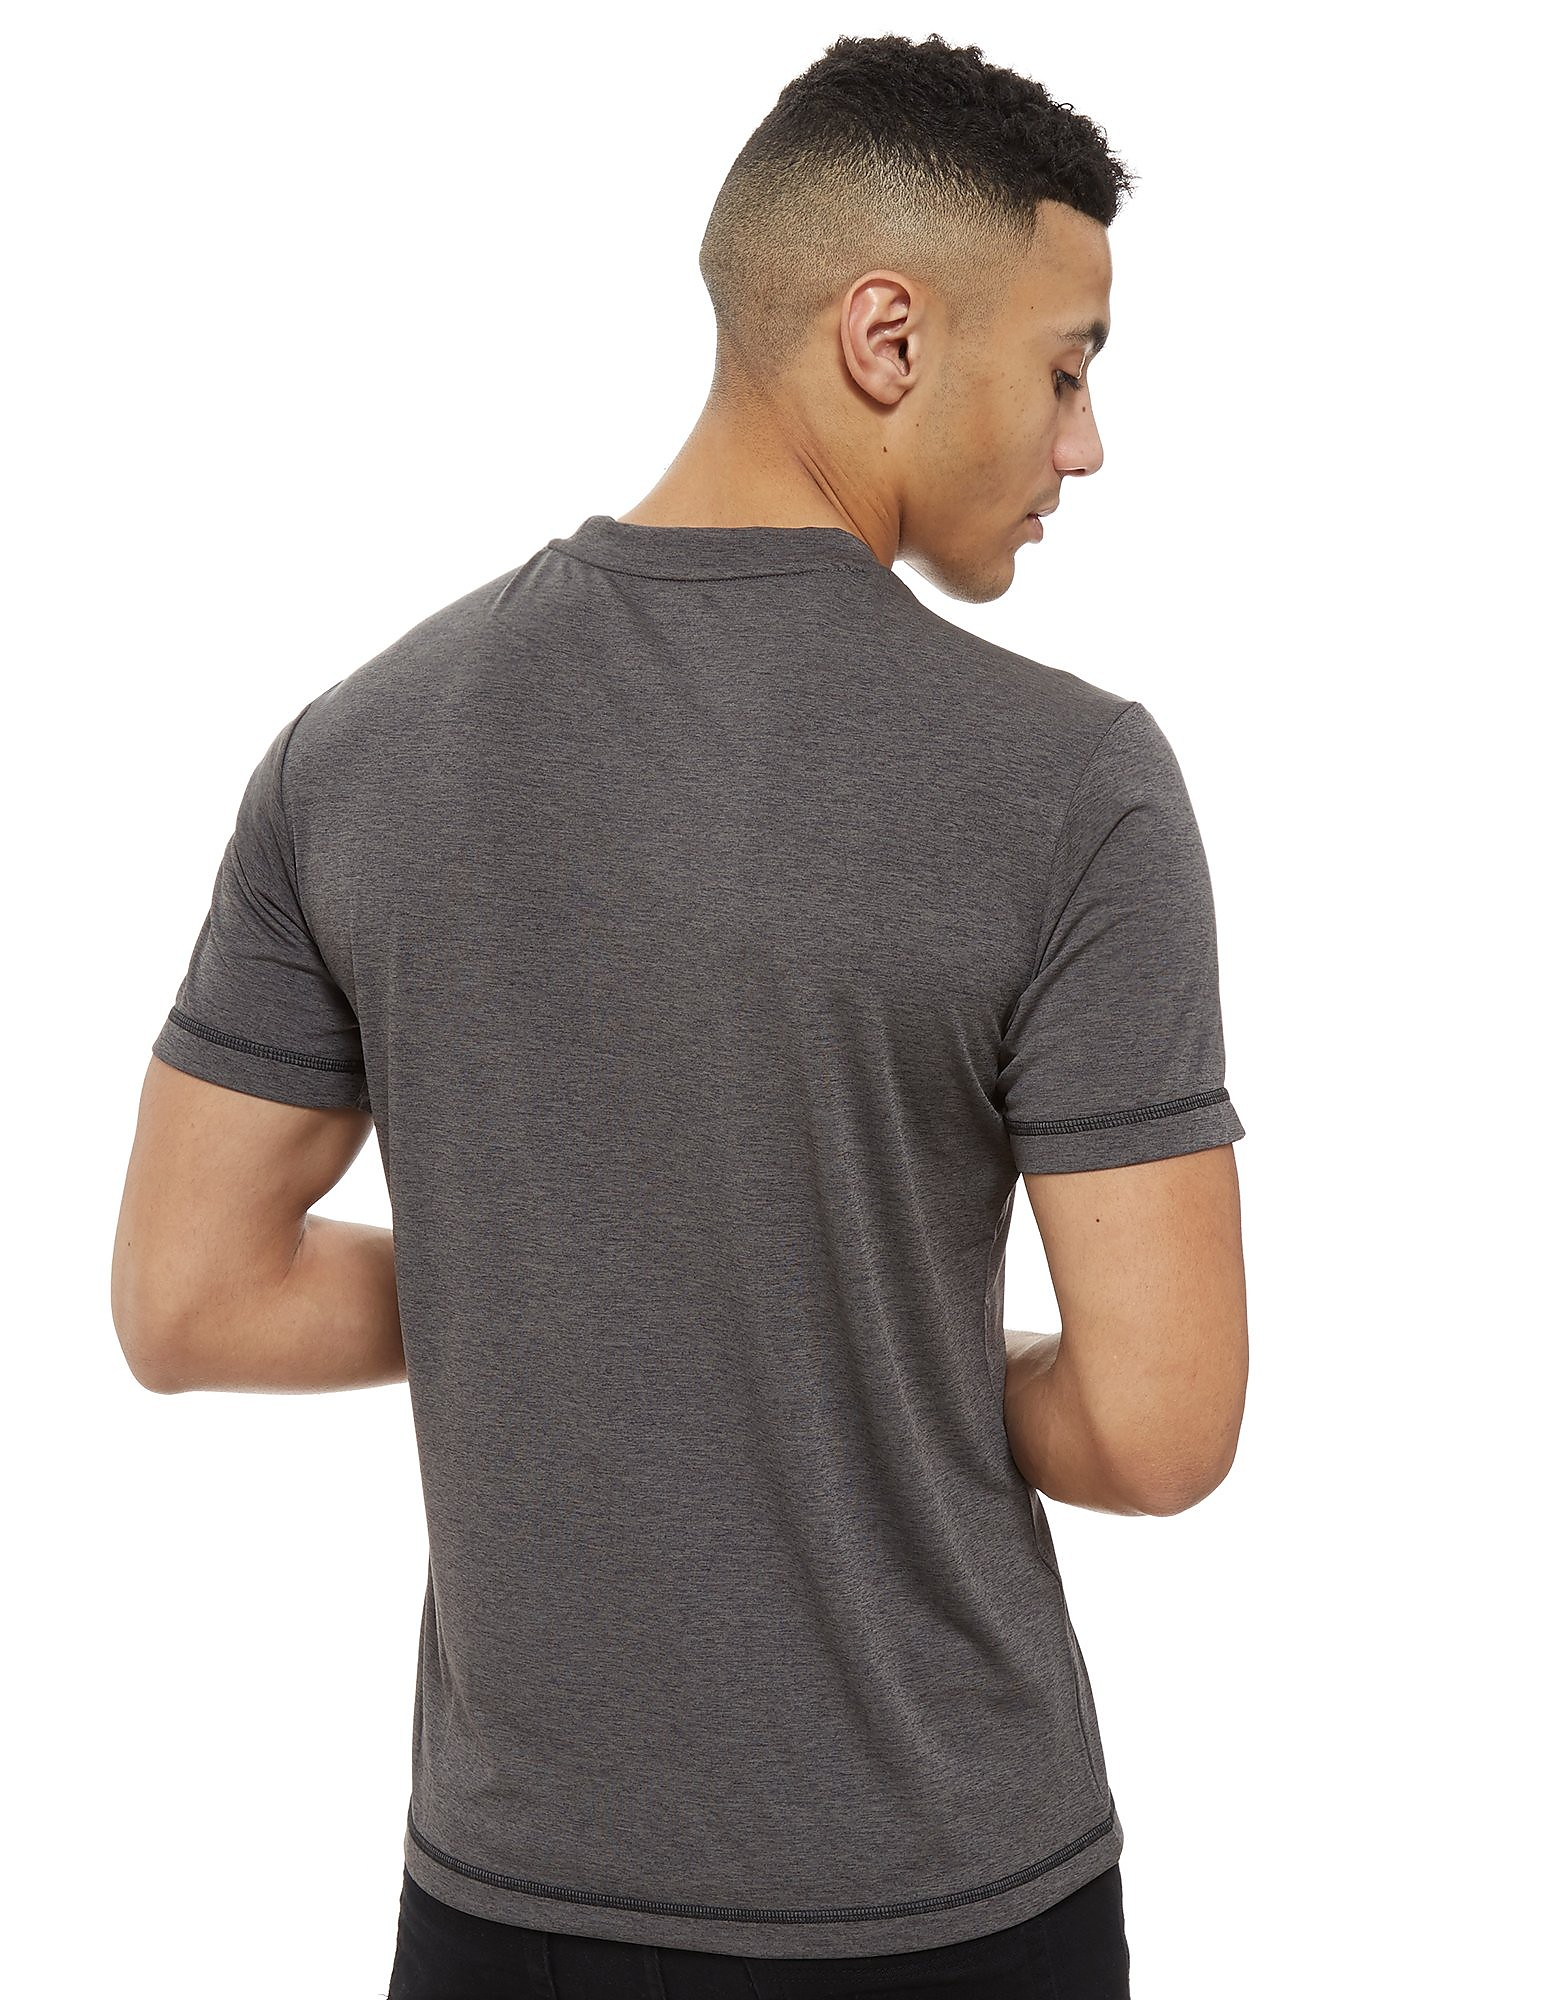 Jack Wolfskin Short Sleeve Core Tech T-Shirt